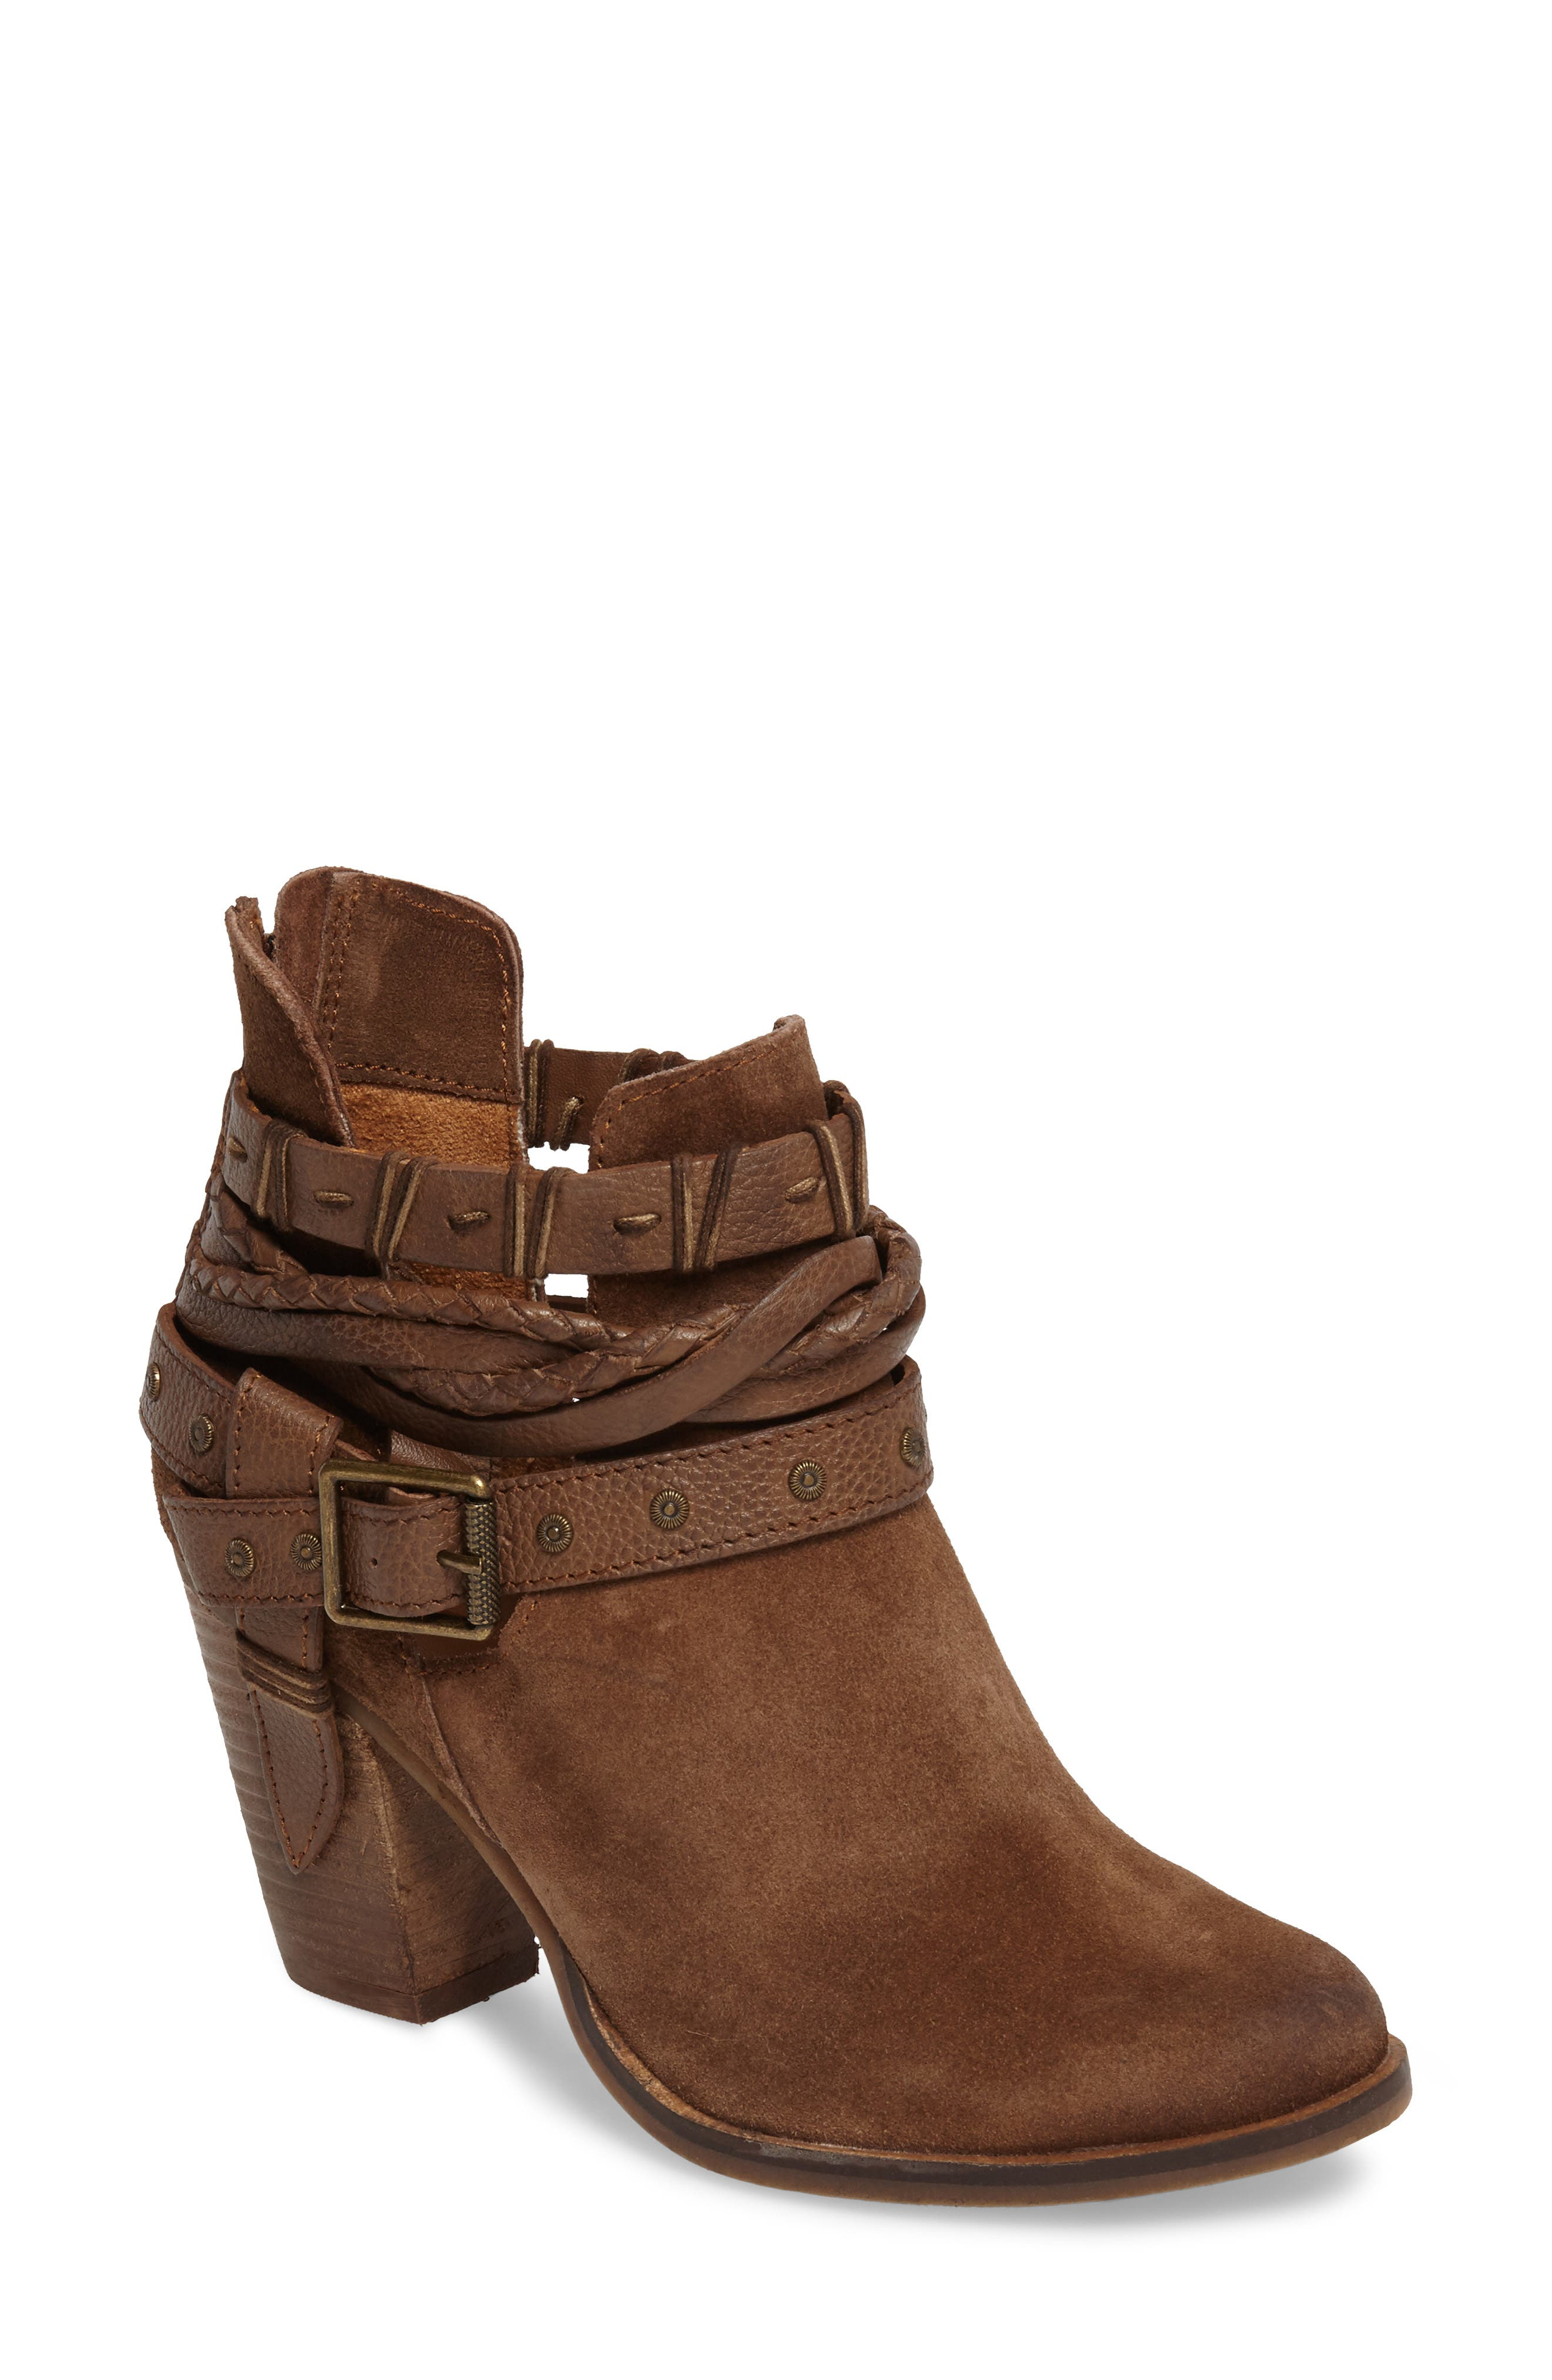 Cuthbert Strappy Bootie,                             Main thumbnail 1, color,                             Tan Suede